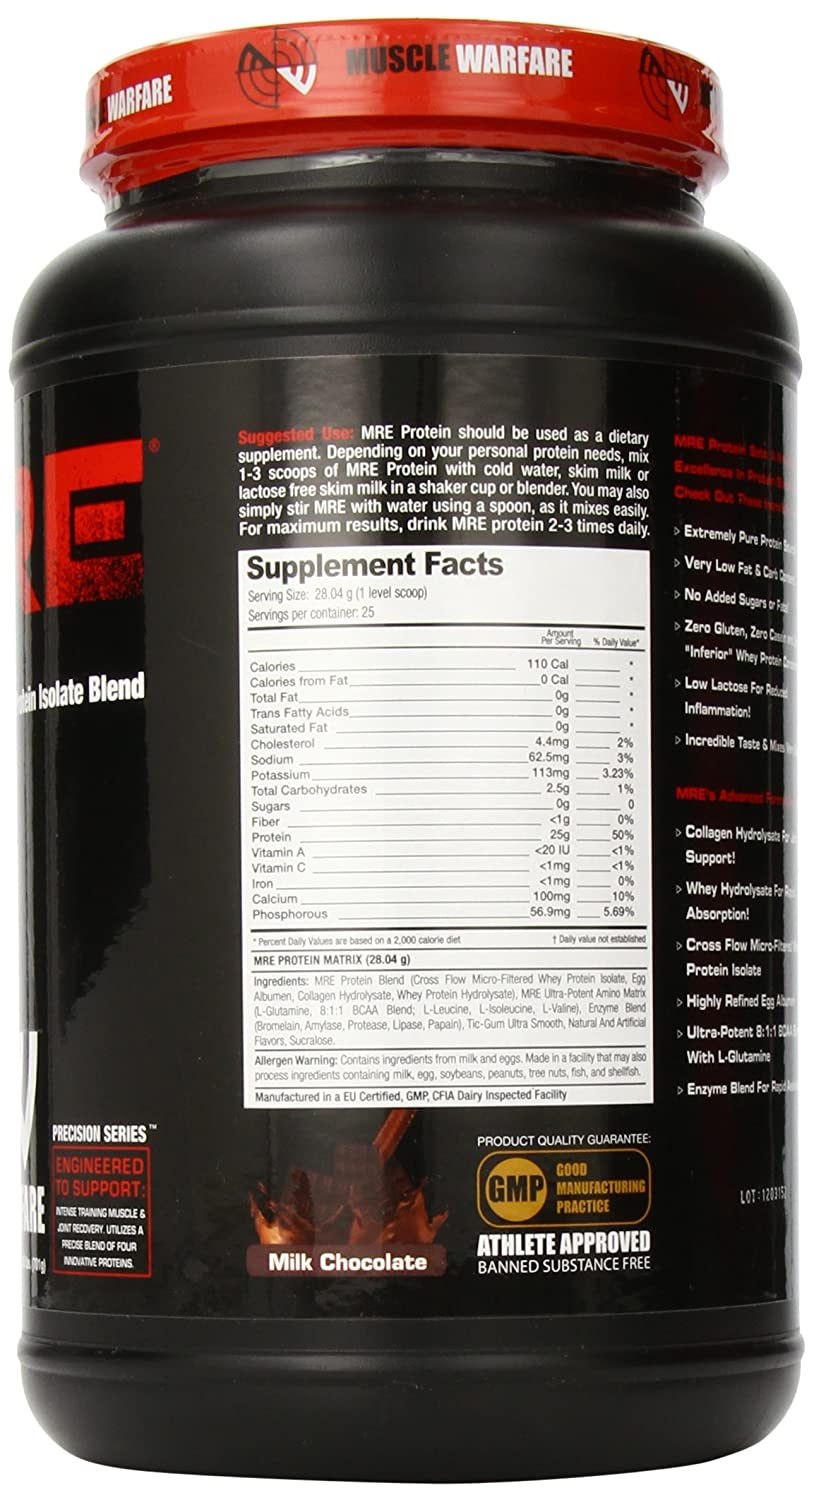 Amazon.com: Muscle Warfare MRE Protein Diet Supplements, Chocolate: Health & Personal Care